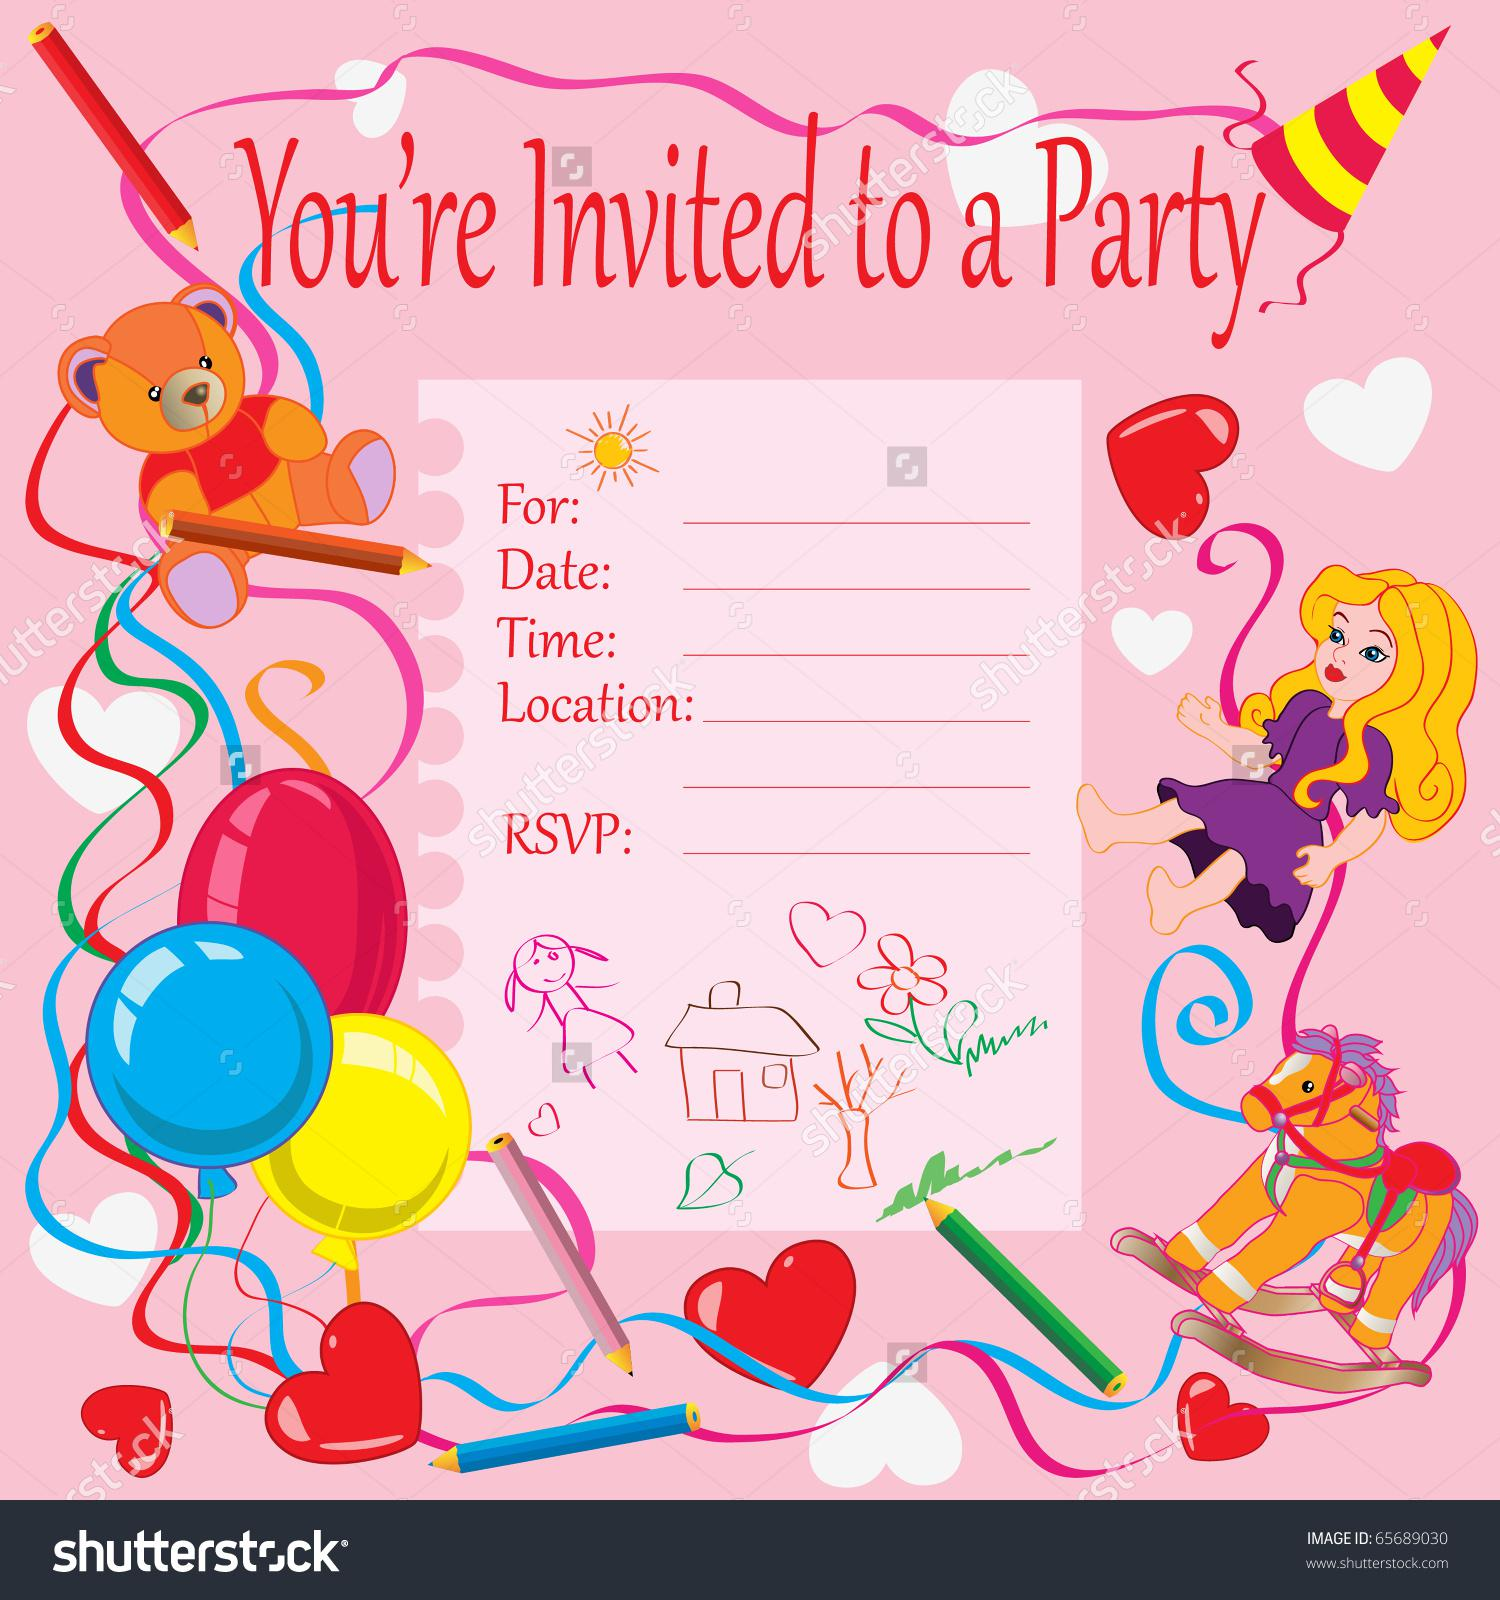 Invitation birthday party card robertottni invitation birthday party card stopboris Choice Image